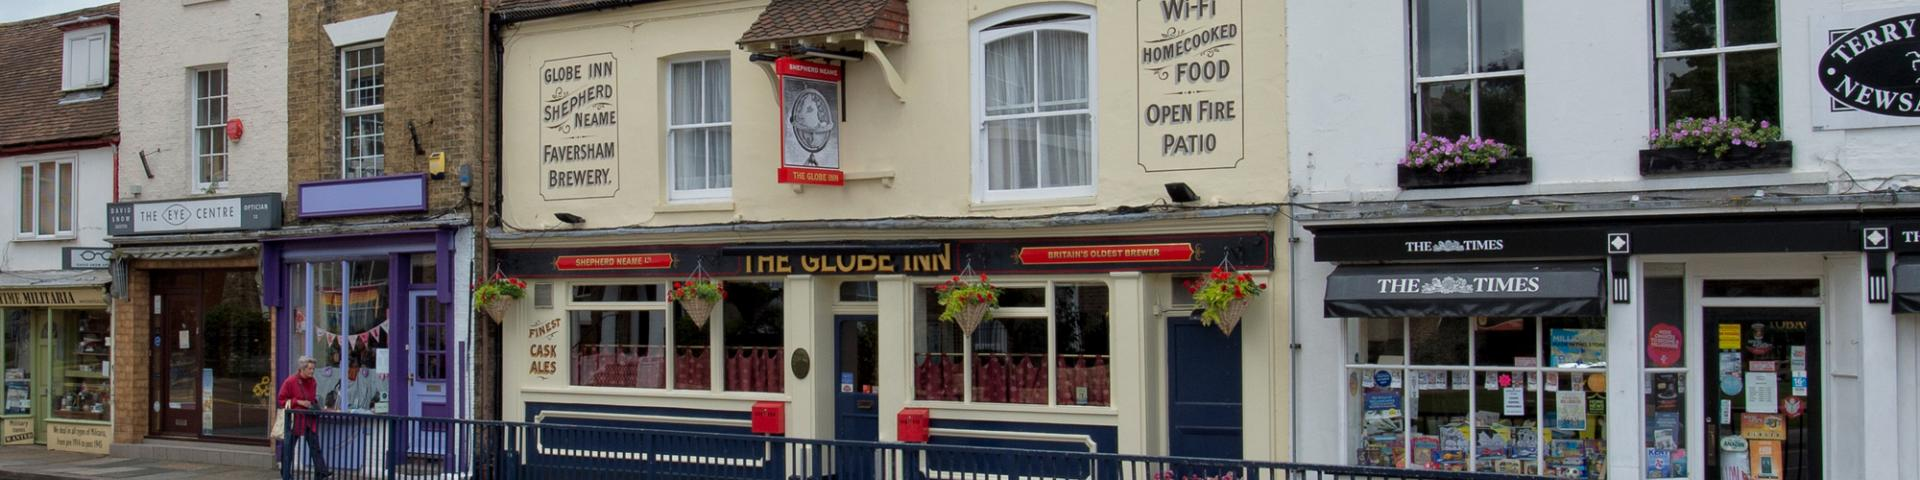 The Globe Inn Hythe Bar 1